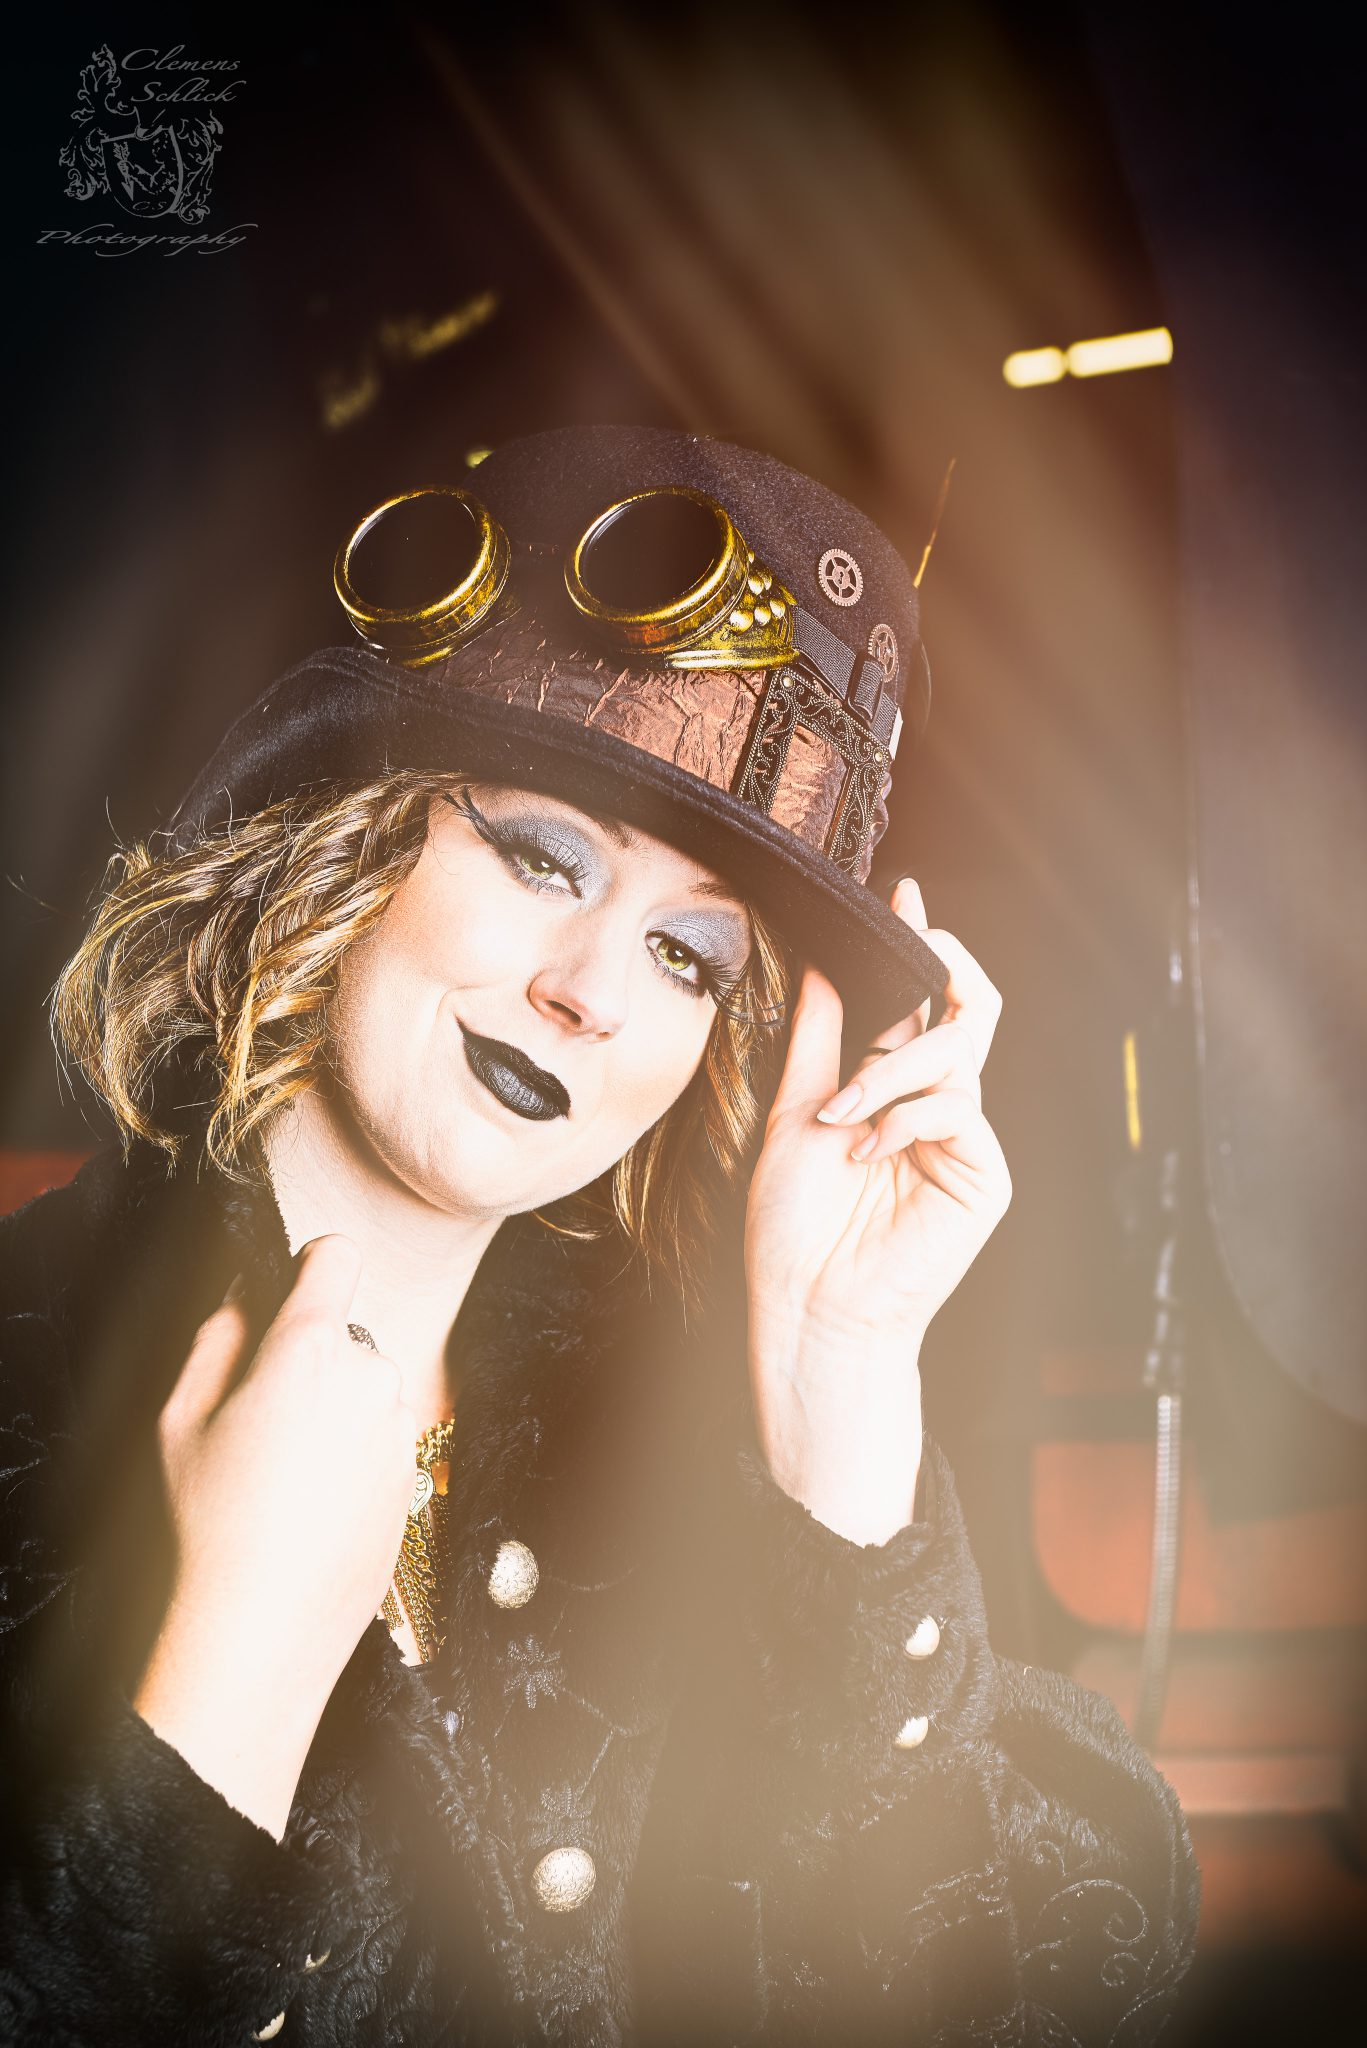 20141213-SteamPunk-CS5661E.jpg